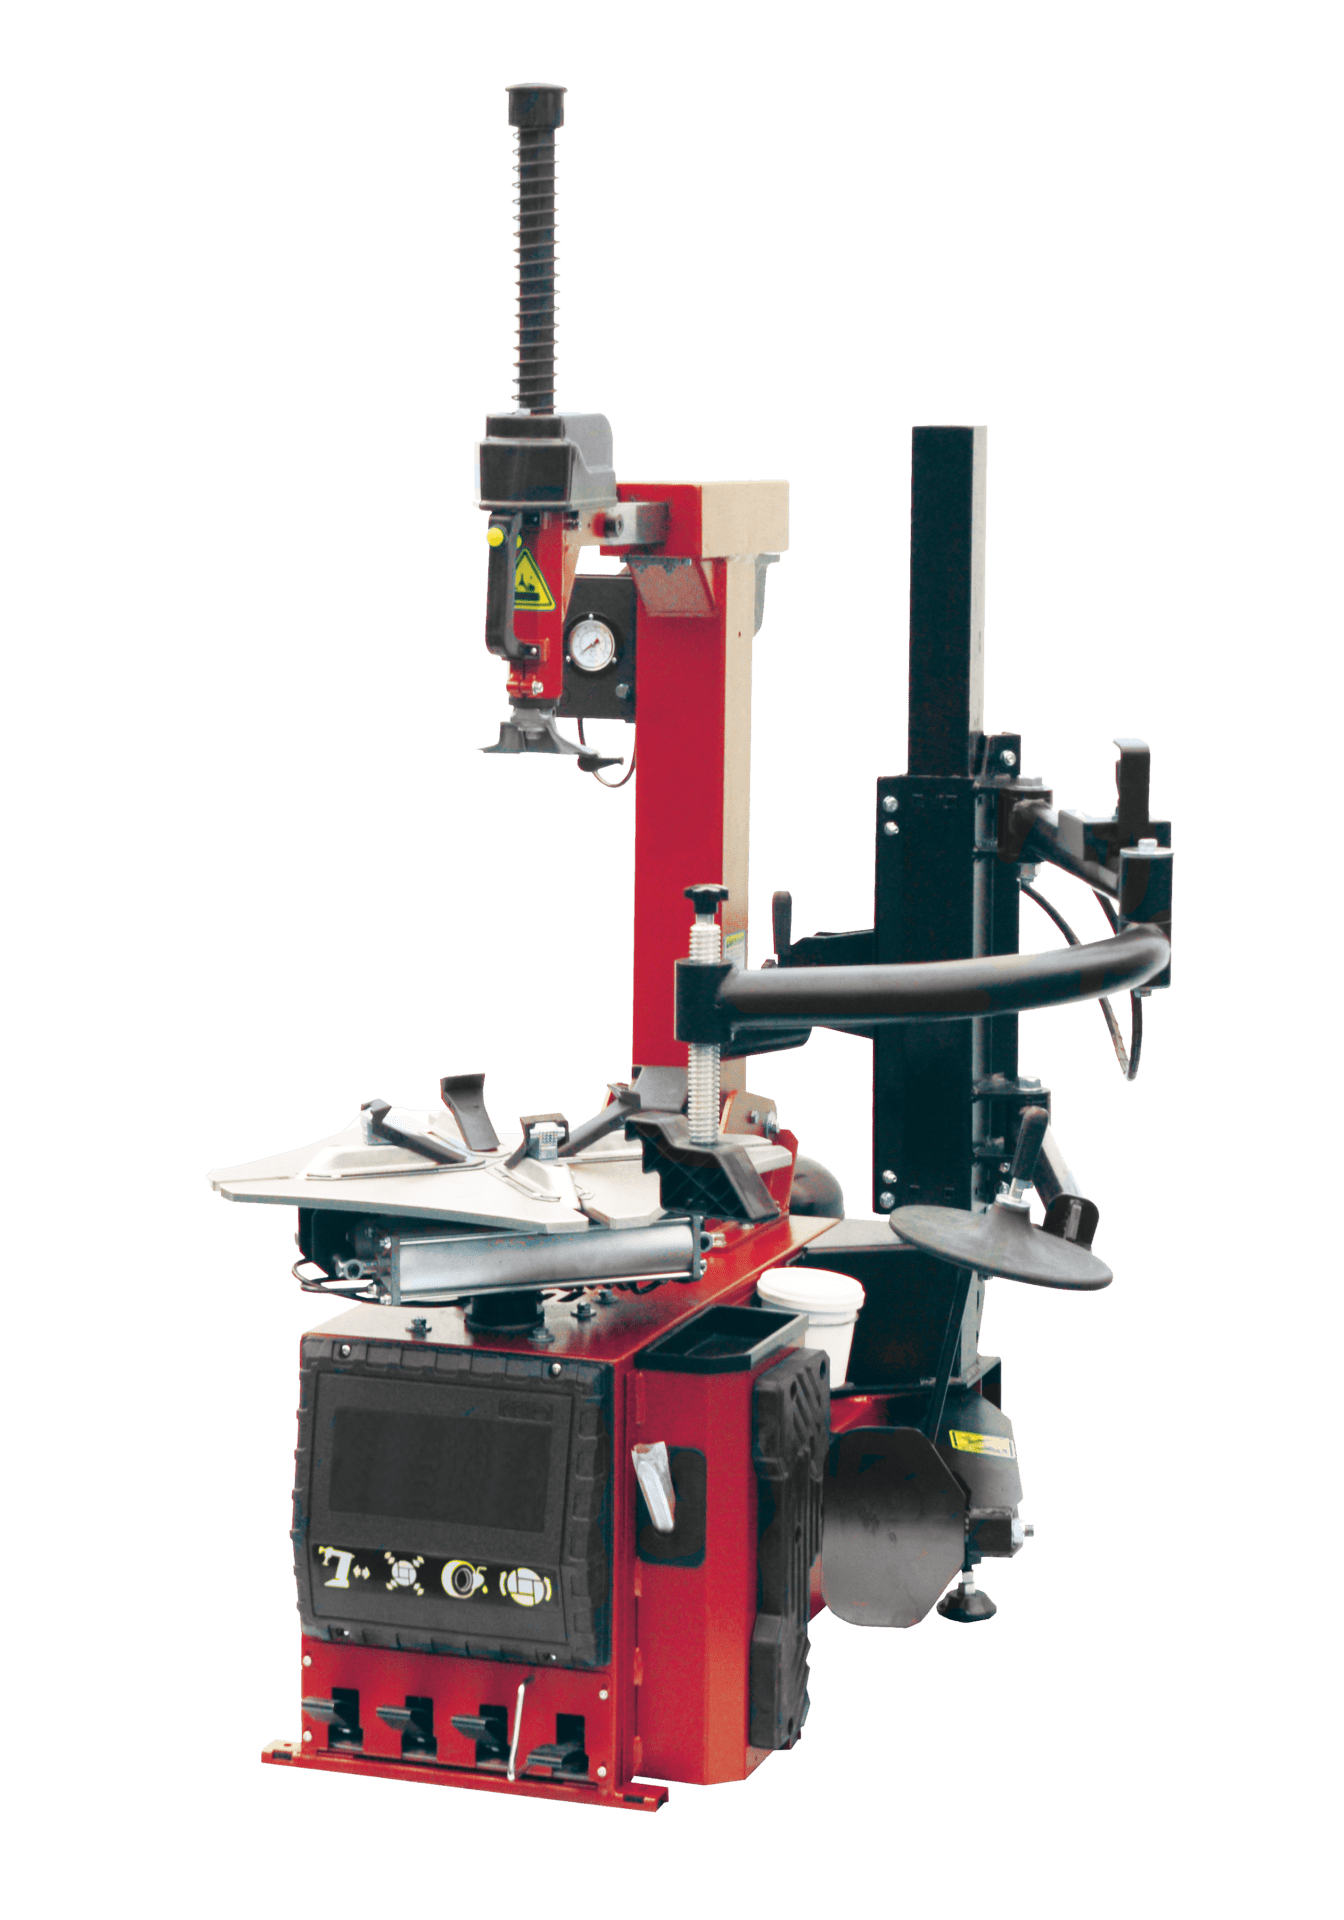 car tyre changer nz. tyre changer with help arm